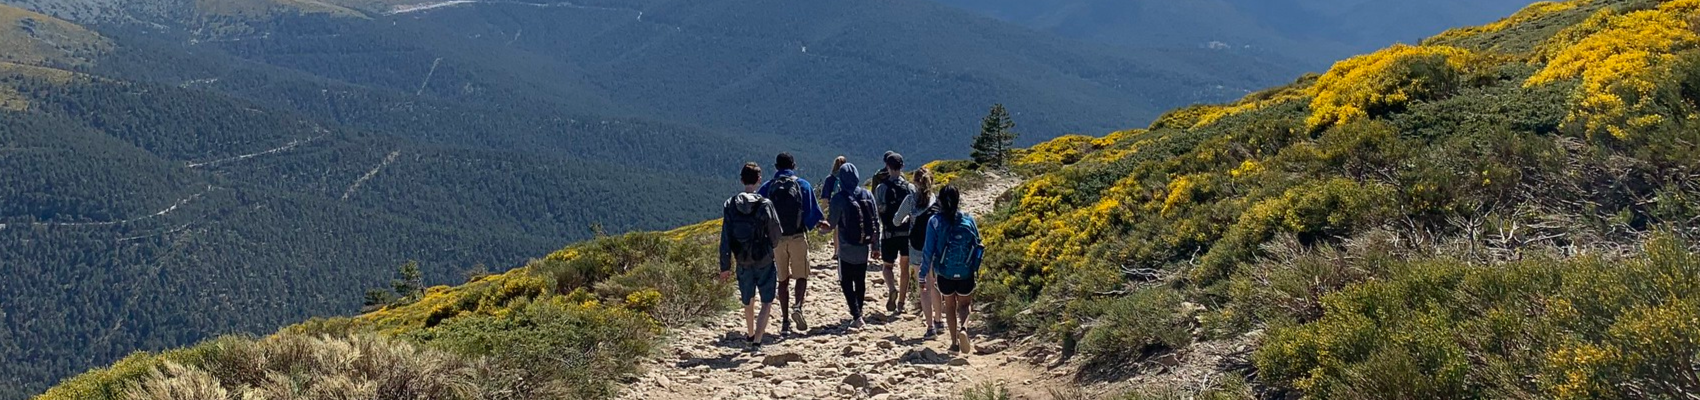 students walking down hill over-looking landscape